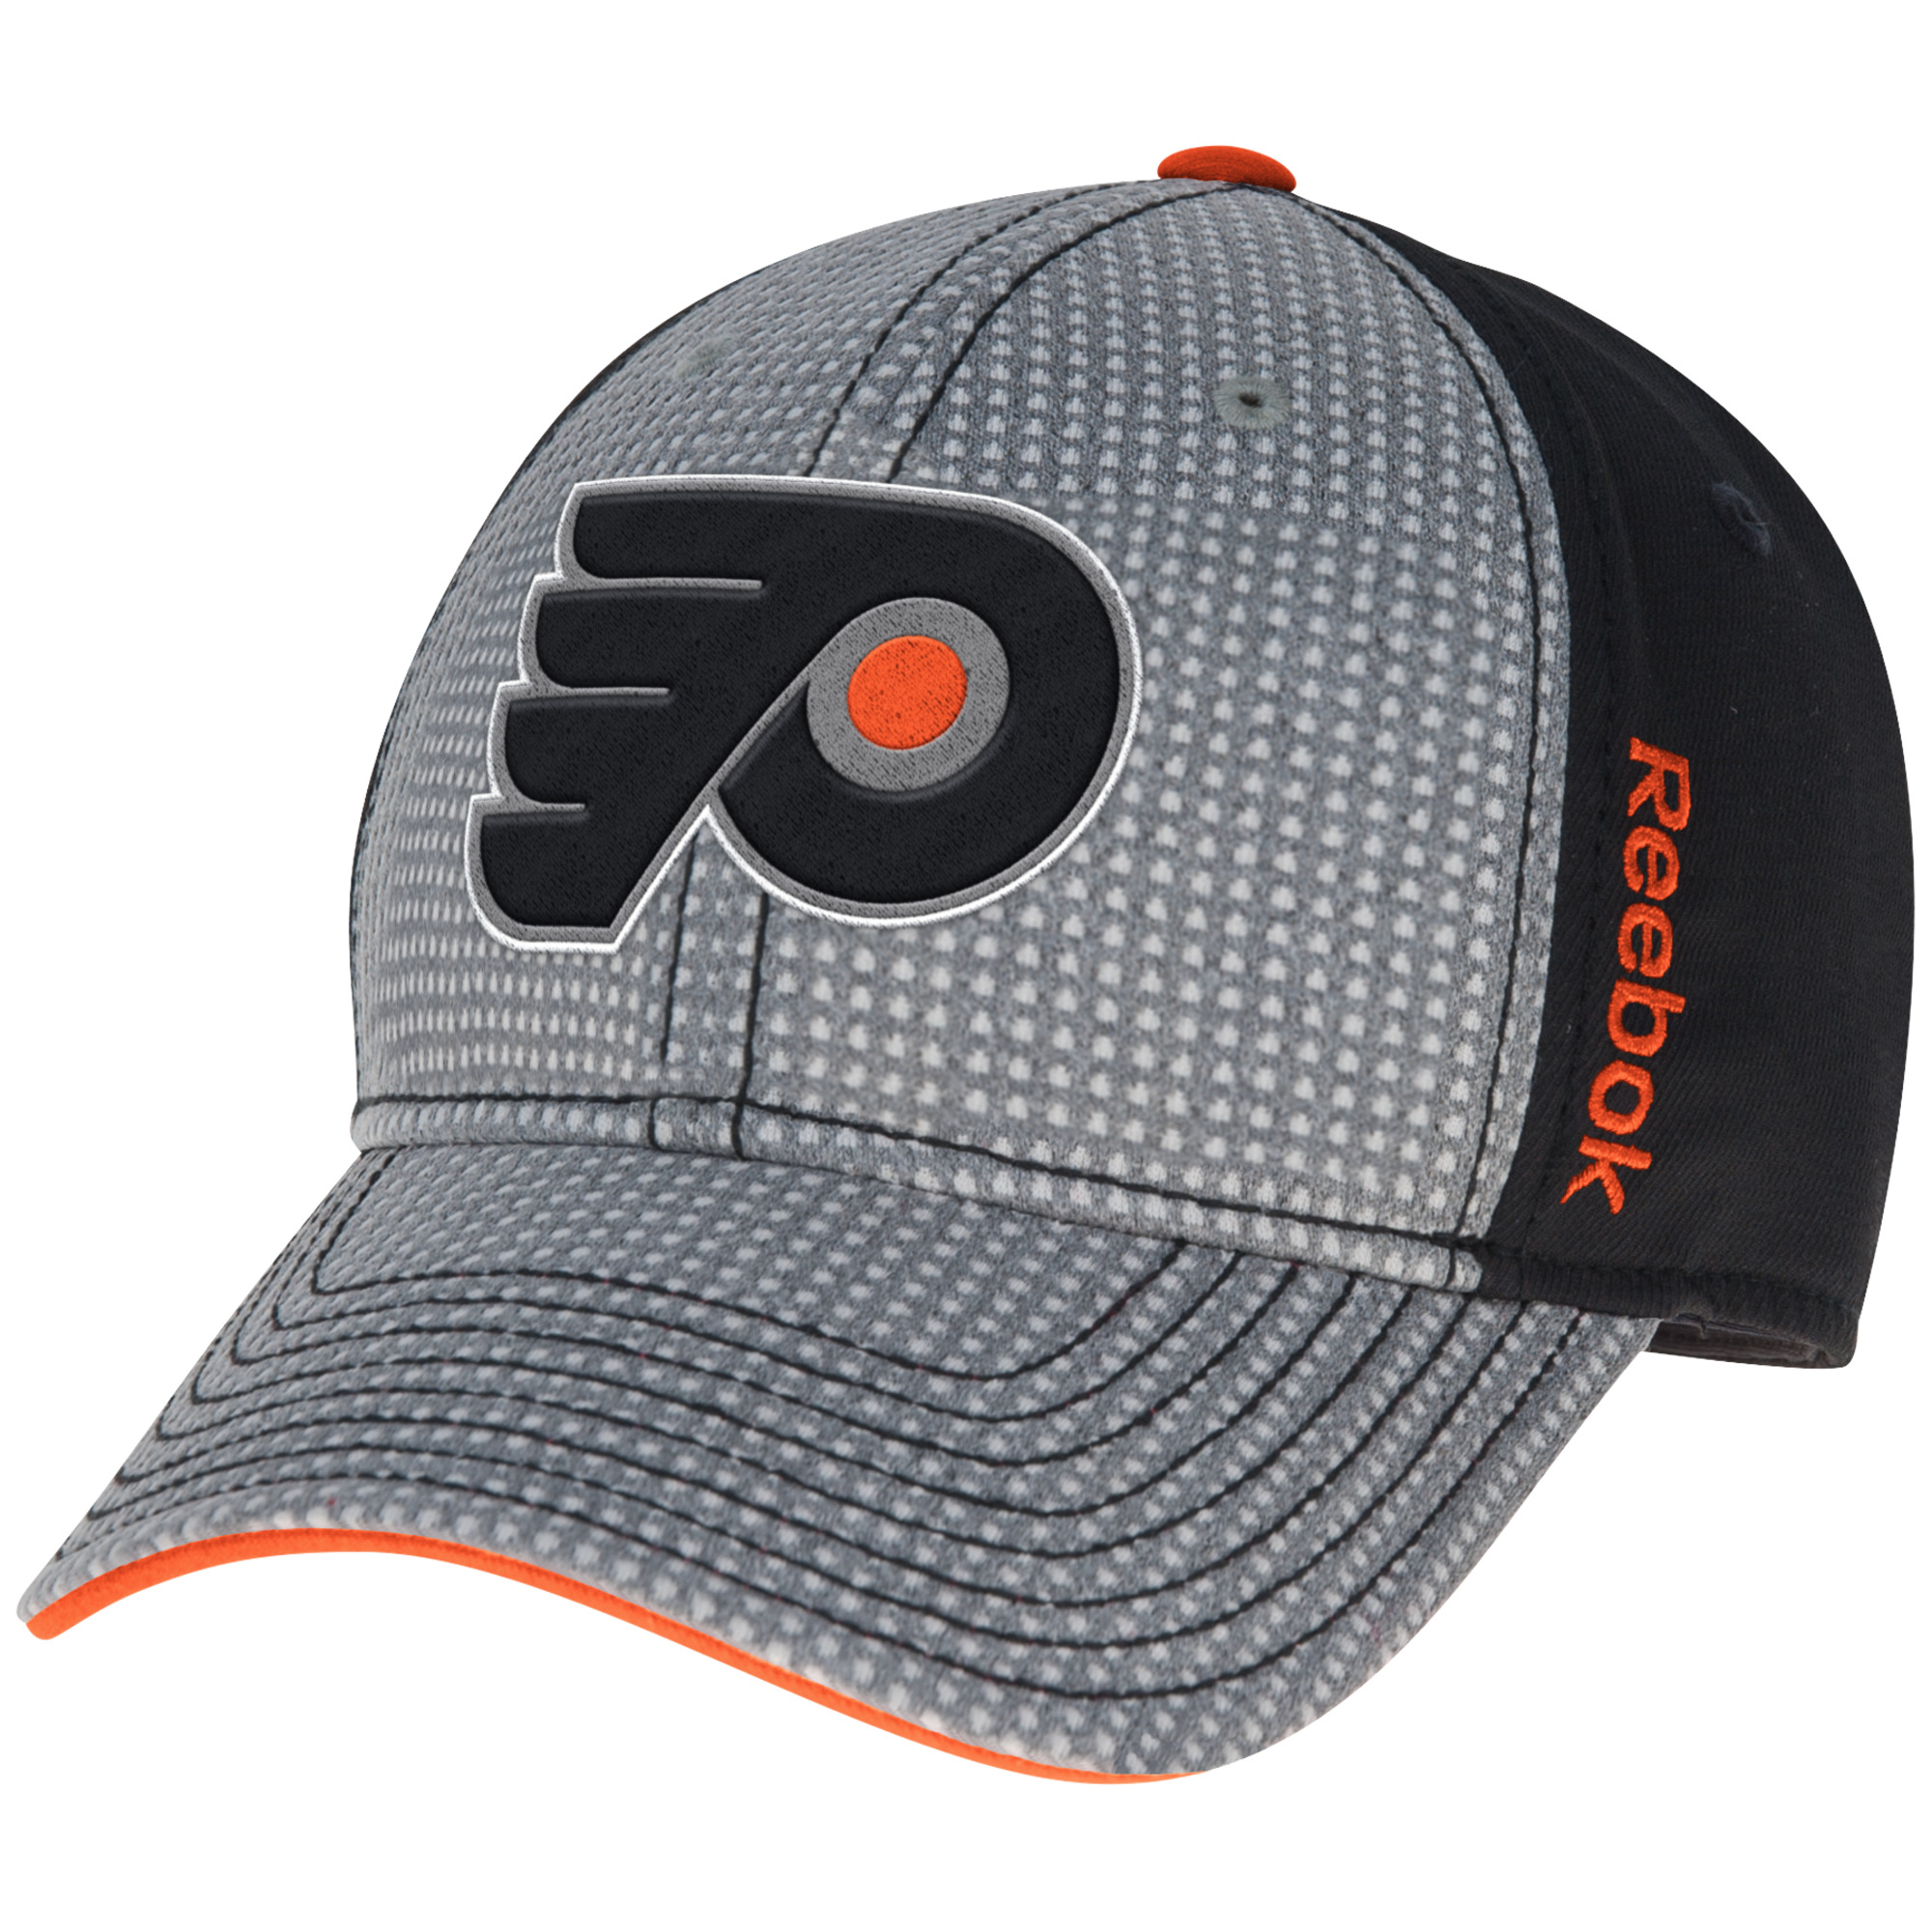 Philadelphia Flyers Men s Center Ice Fashion Structured Cap by Reebok 54abd96ab8fe